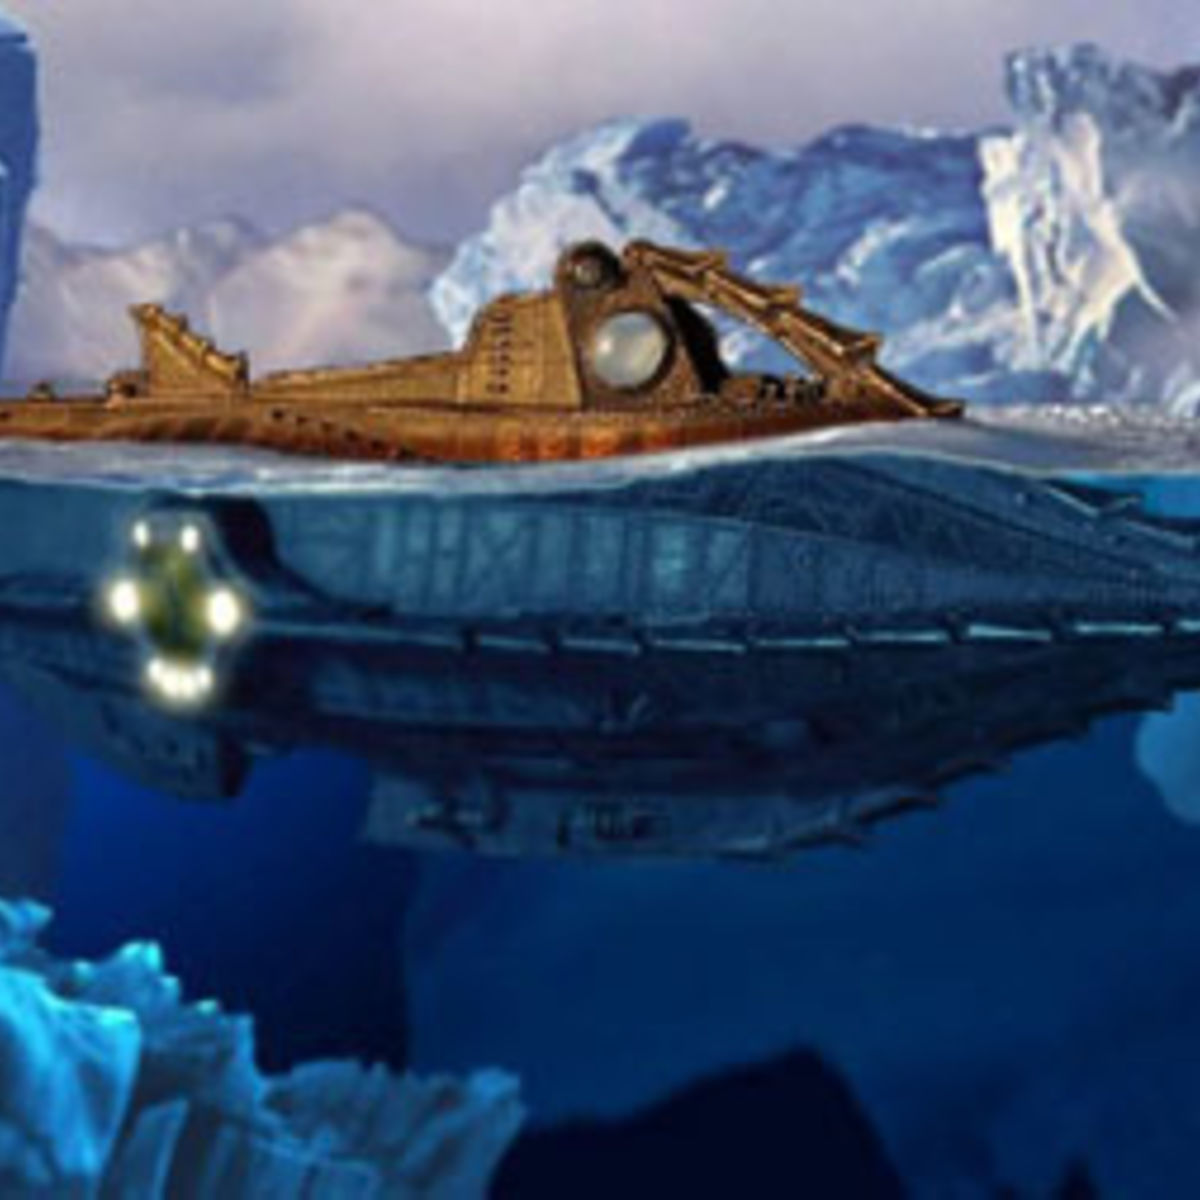 20-000-leagues-under-the-sea-original-650x365.jpg